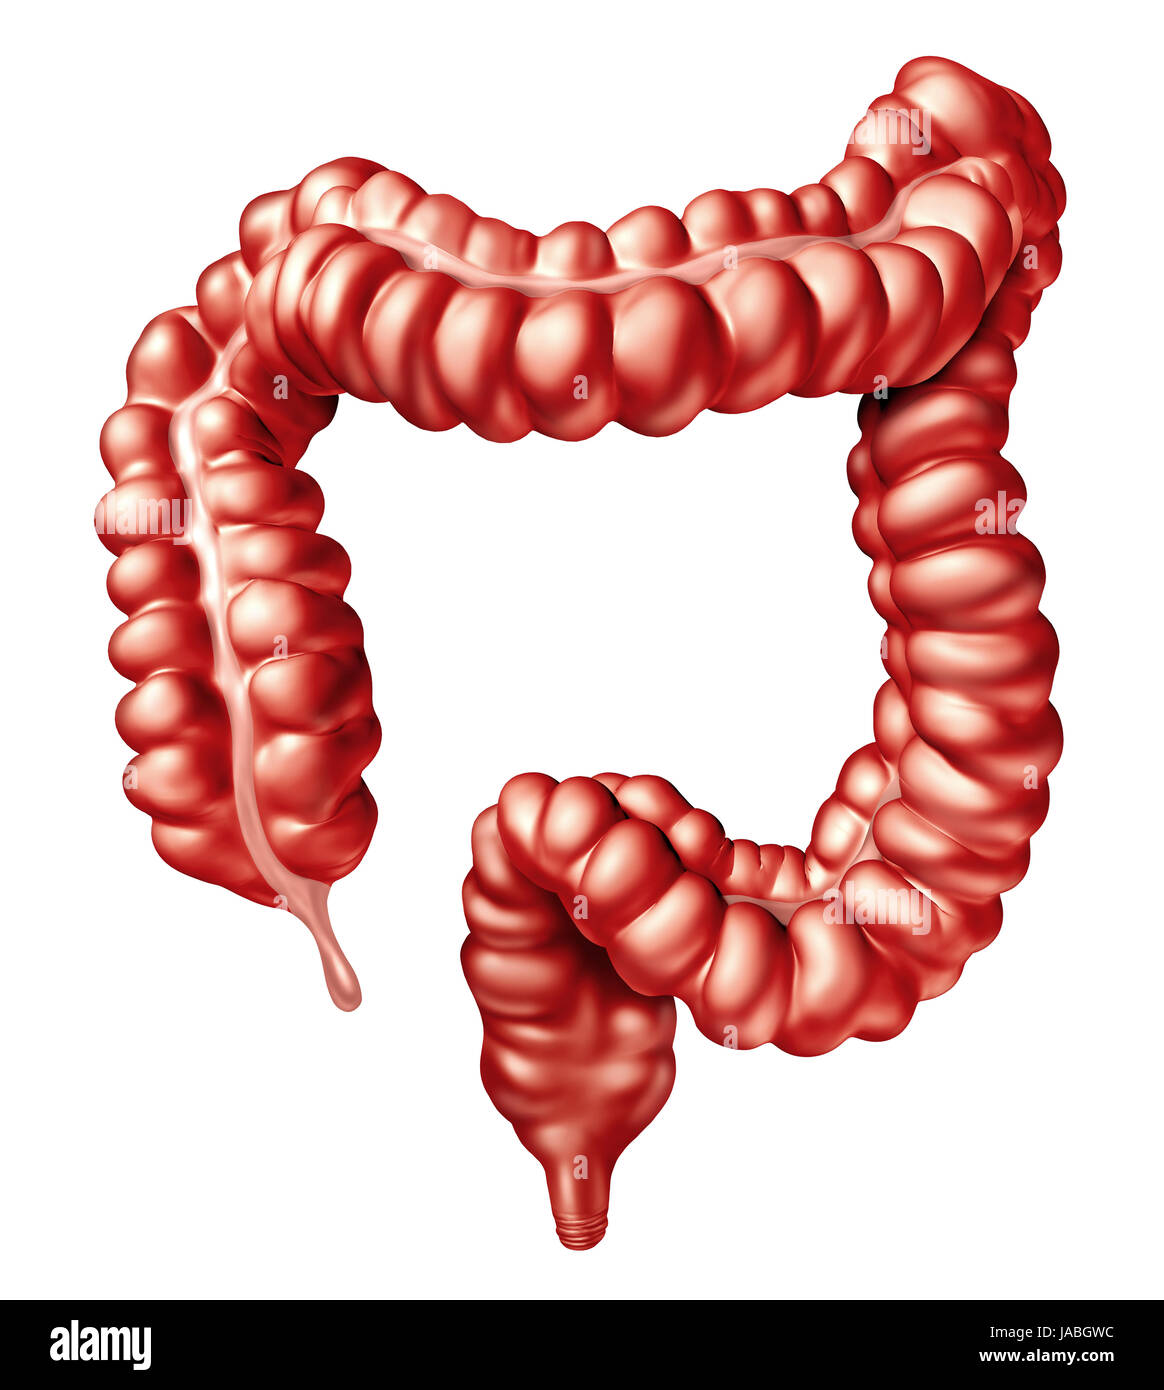 large intestine or colon human bowel illustration as a digestive